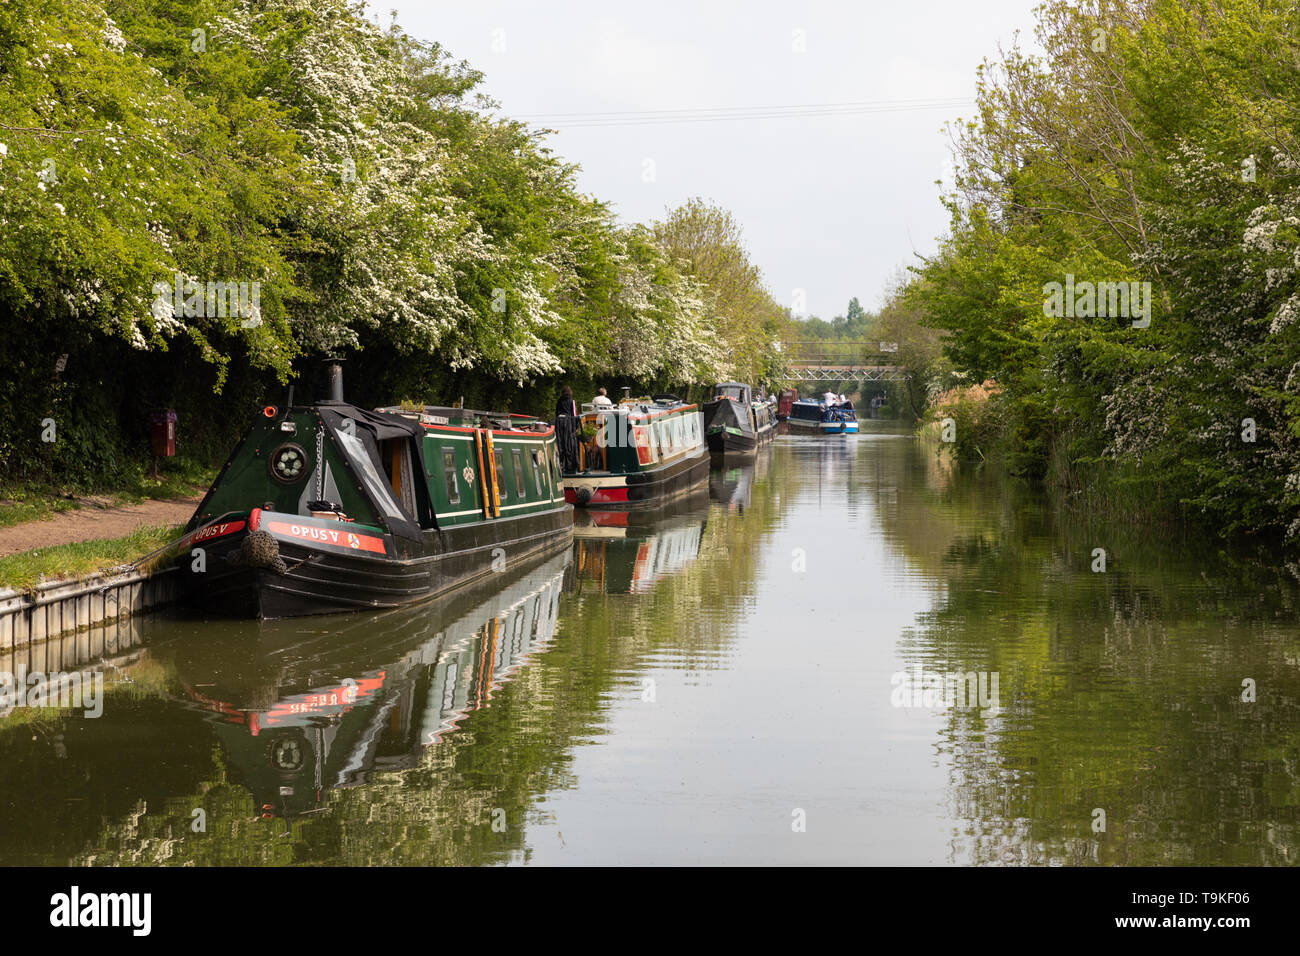 Narrowboats moored along the Grand Union Canal in readiness for the Crick Boat Show, billed as Britain's biggest inland waterways festival. - Stock Image